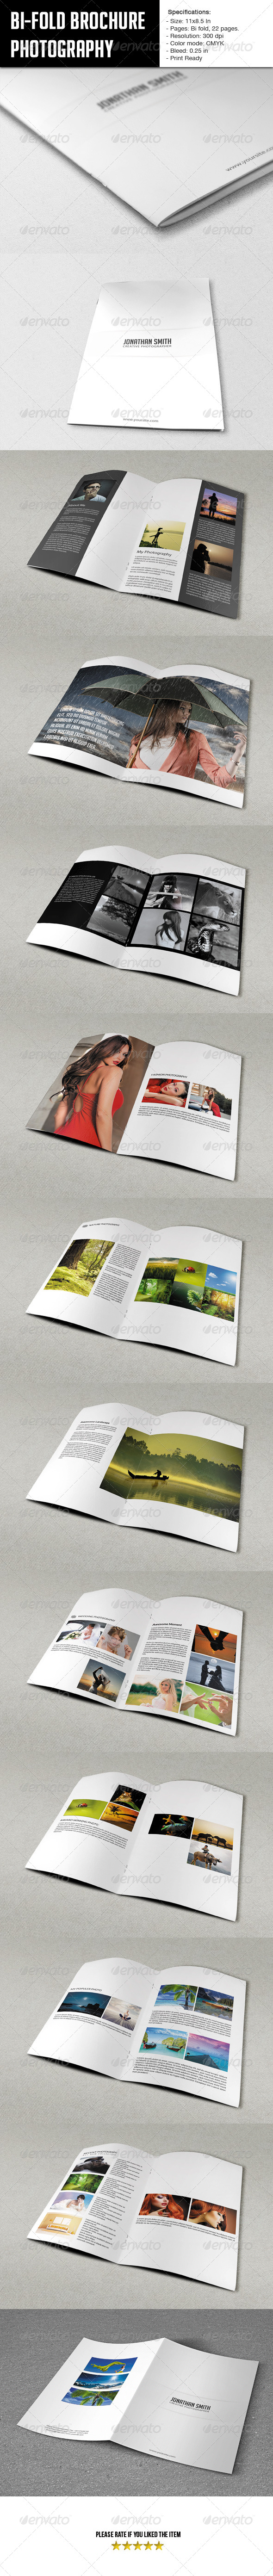 GraphicRiver Bifold Brochure-Photographer Portfolio 5875041